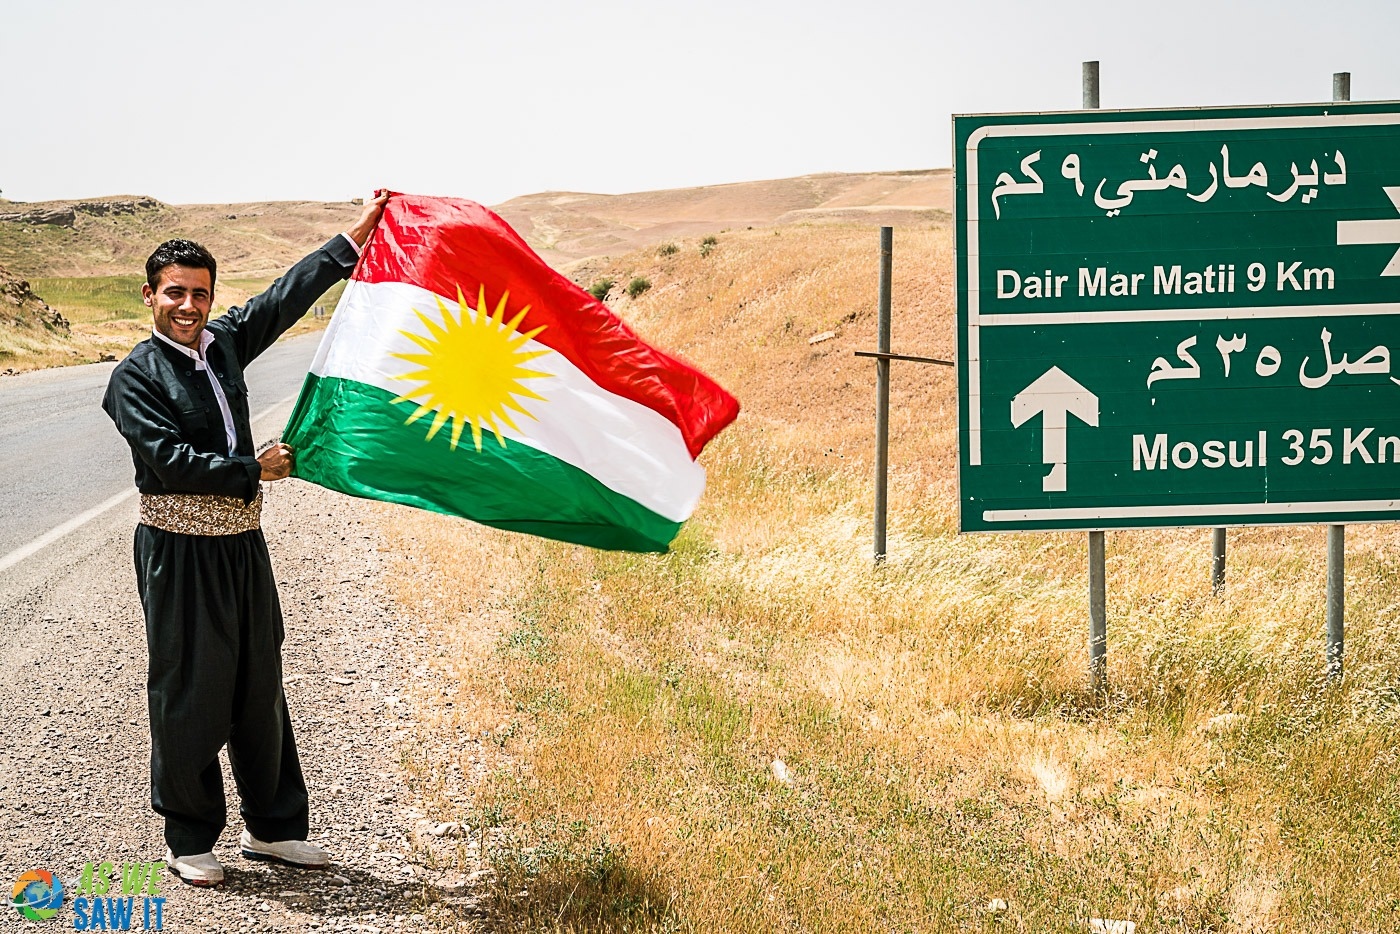 On the road to Mosul with Karwan of KurdistanTours.net